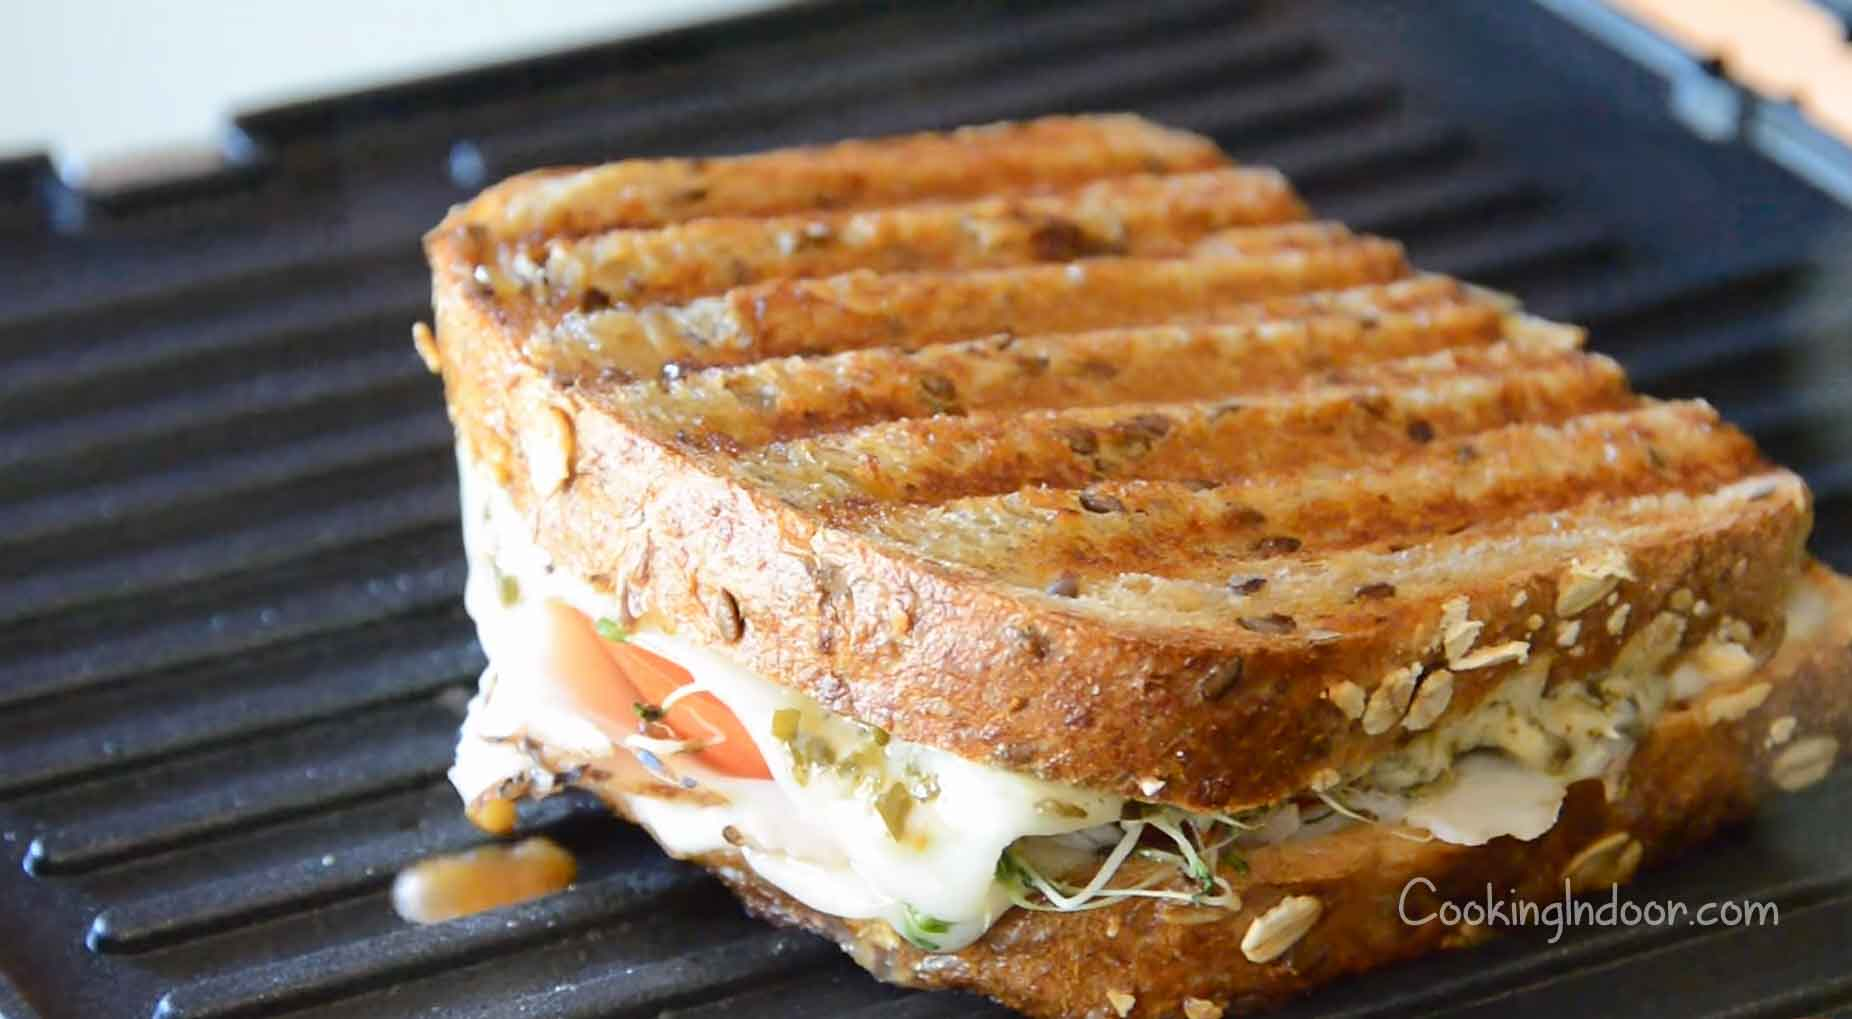 Best electric panini grill